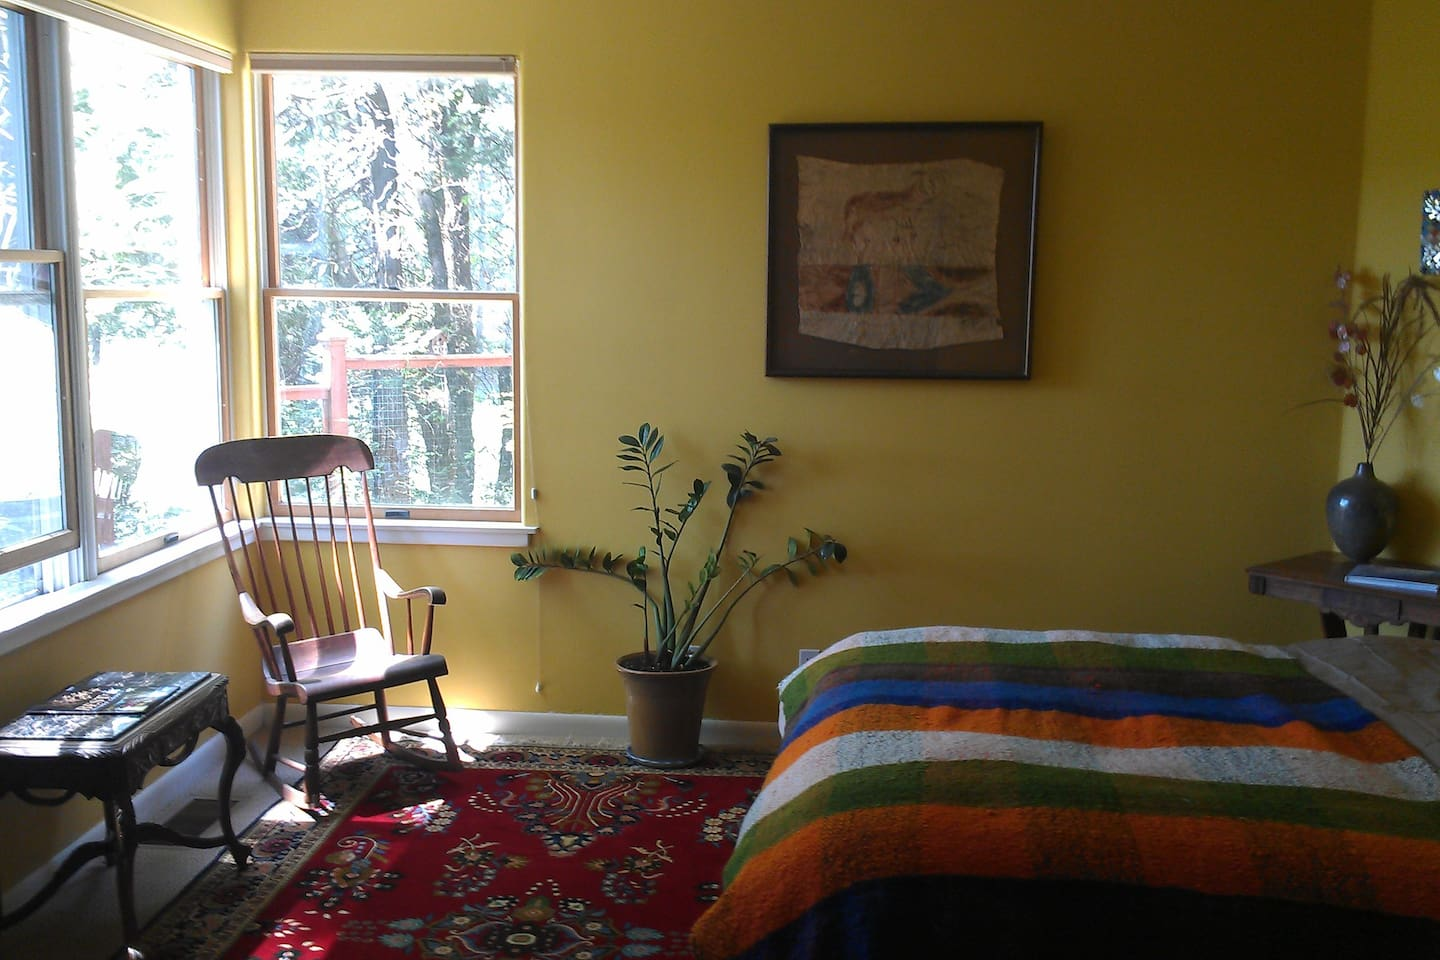 The T.S. Eliot room and our Boston rocker and aboriginal bark painting